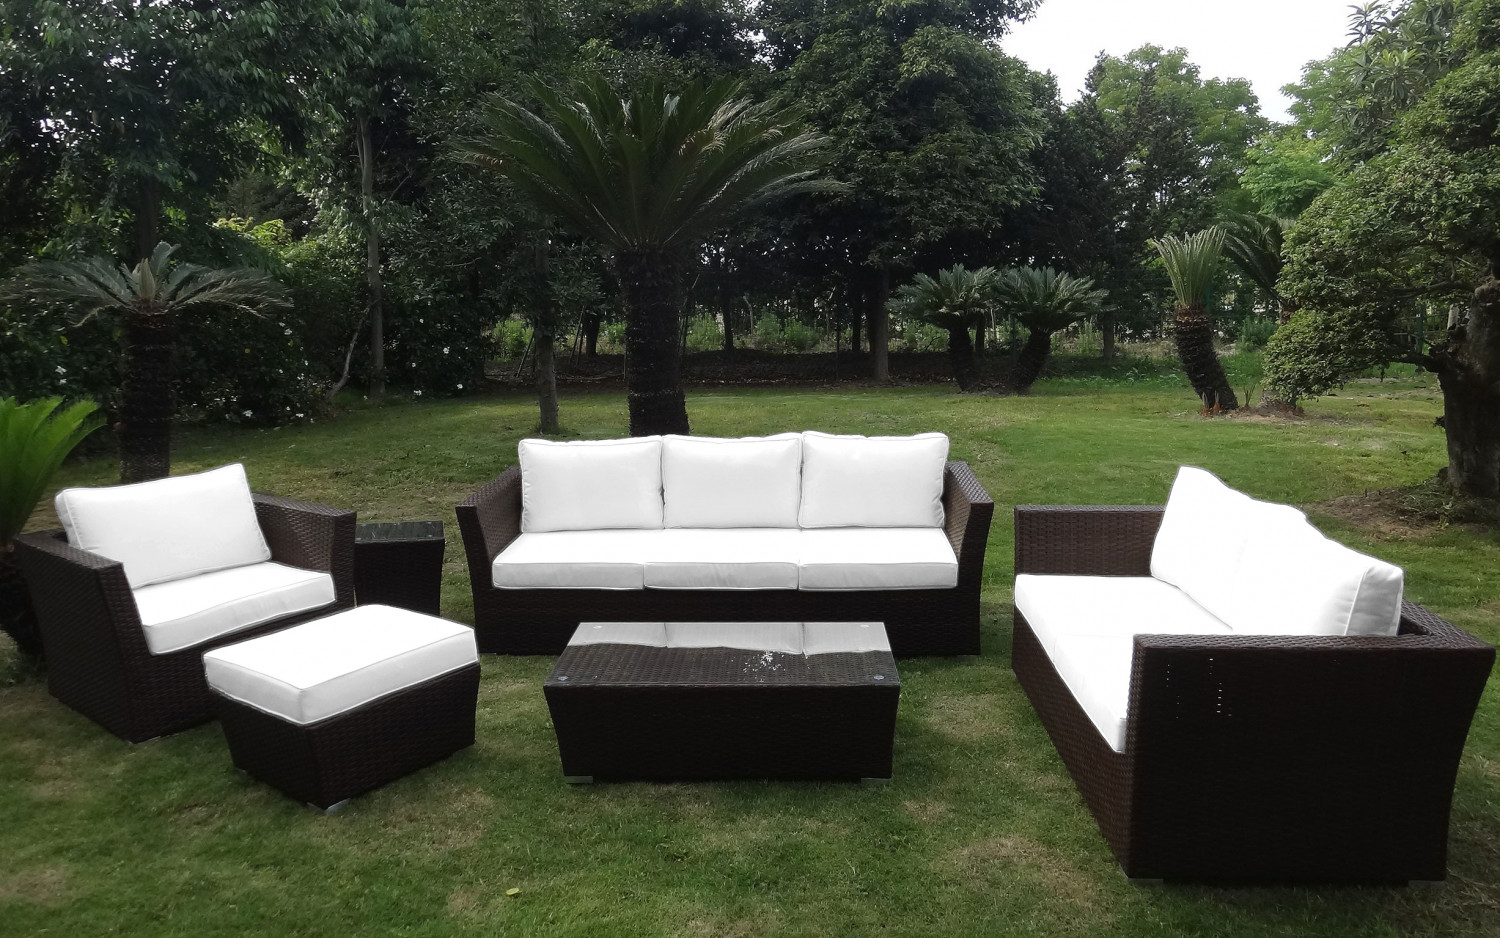 baidani rattan garten lounge treasure select baidani shop. Black Bedroom Furniture Sets. Home Design Ideas